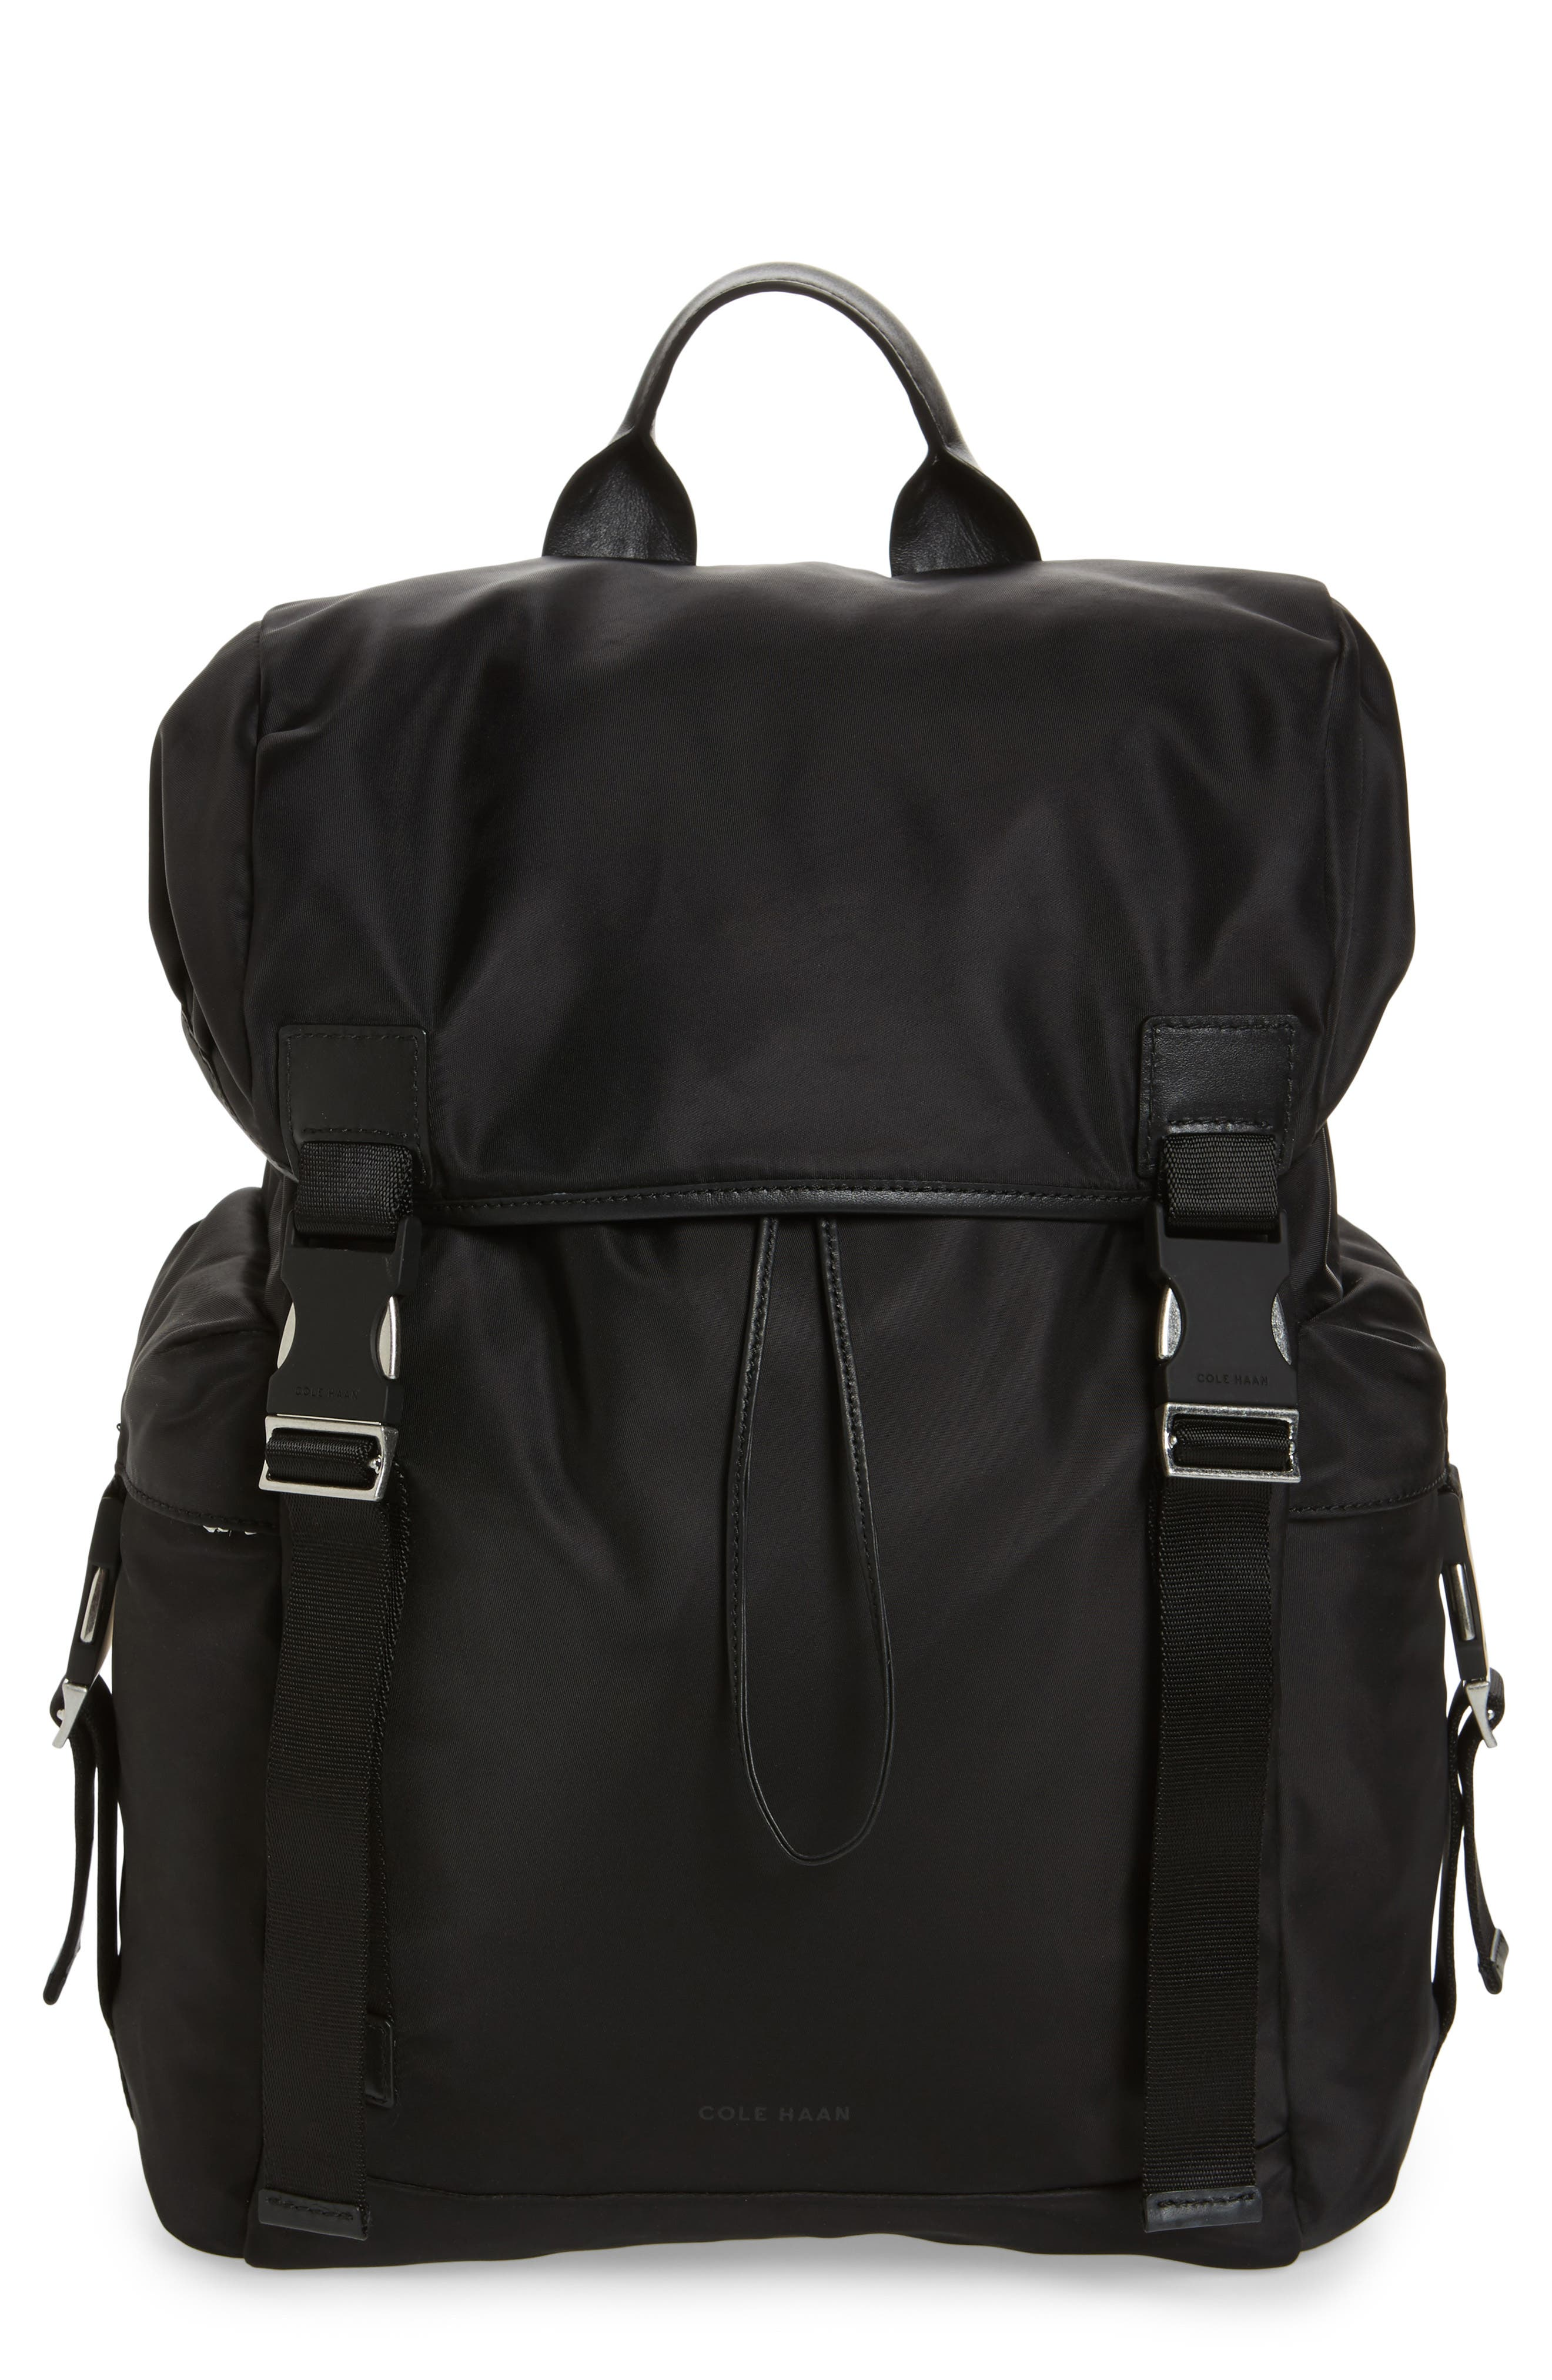 CITY BACKPACK - BLACK